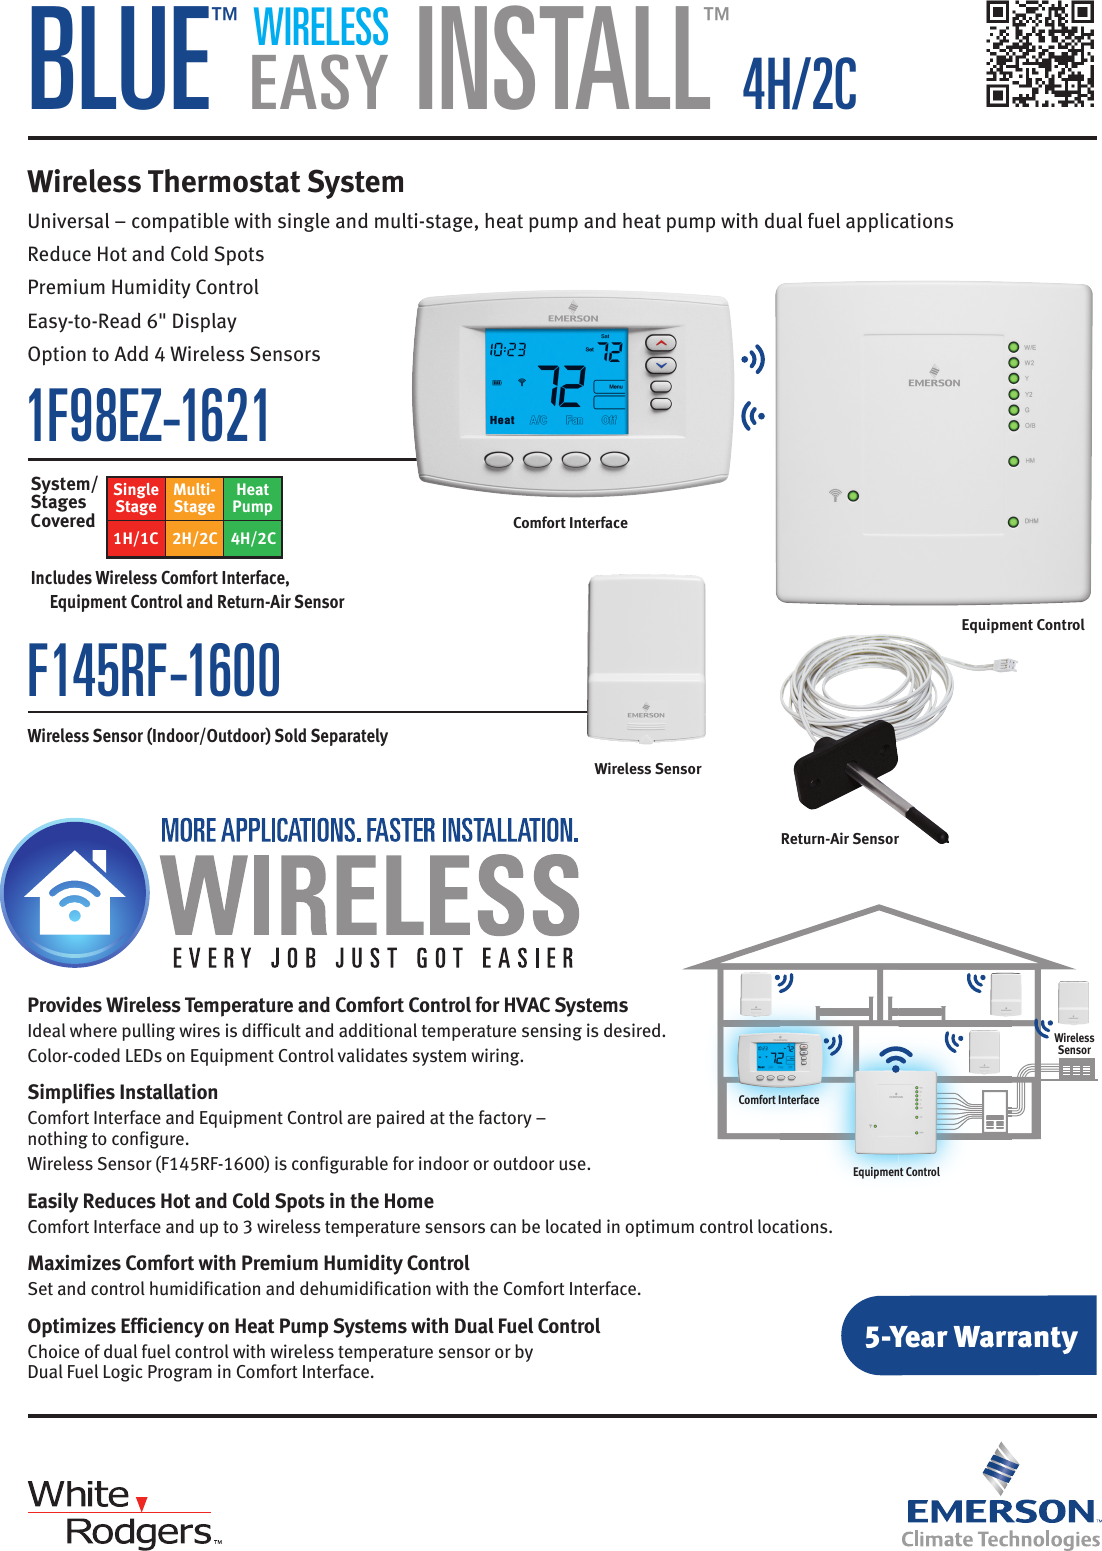 Page 1 of 2 - White-Rodgers White-Rodgers-1F98Ez-1621-Emerson-Blue-Wireless-Easy-Install-Thermostat-System-Specification-Sheet- 136839_WirelessEasyInstall_SS_Rev_Crp  White-rodgers-1f98ez-1621-emerson-blue-wireless-easy-install-thermostat-system-specification-sheet